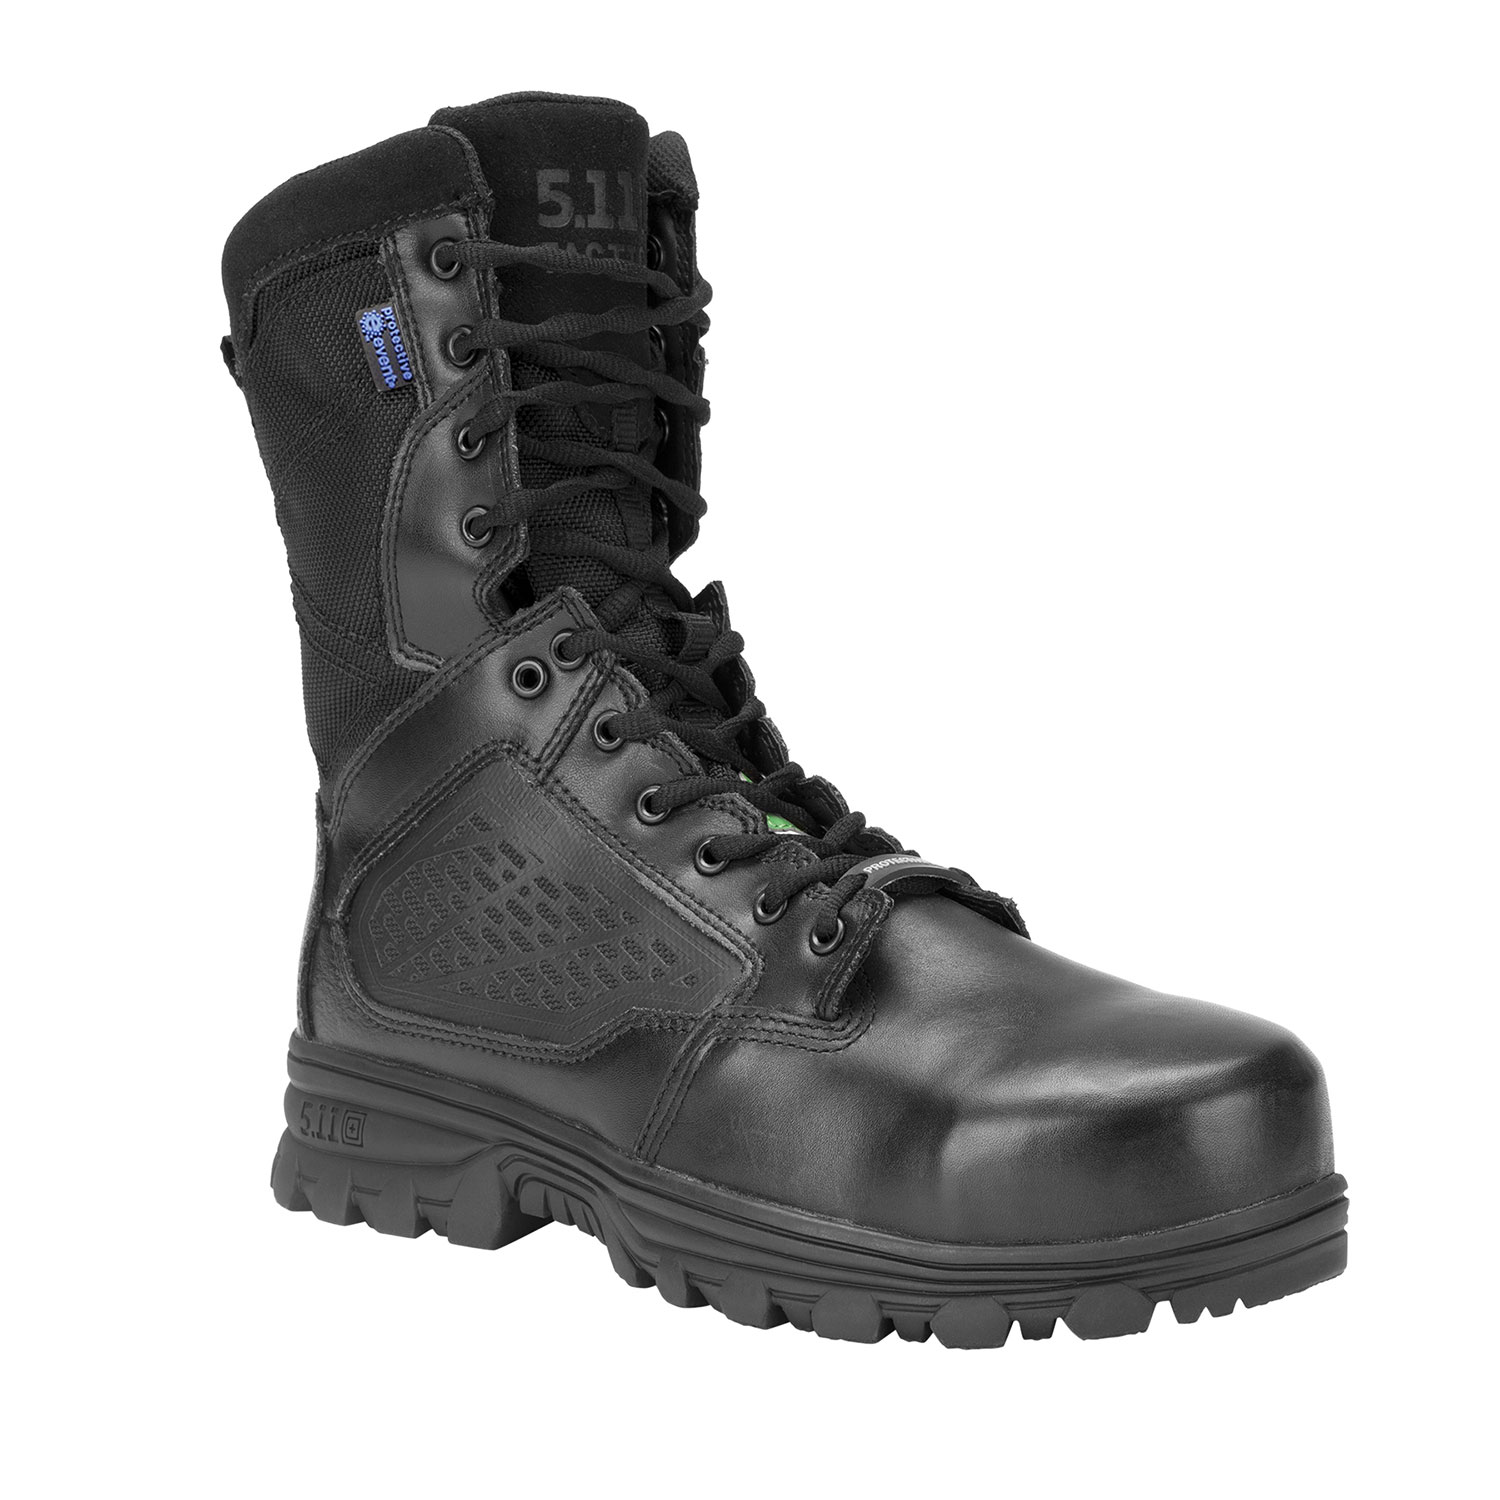 "5.11 Tactical EVO 8"" CST Boots"